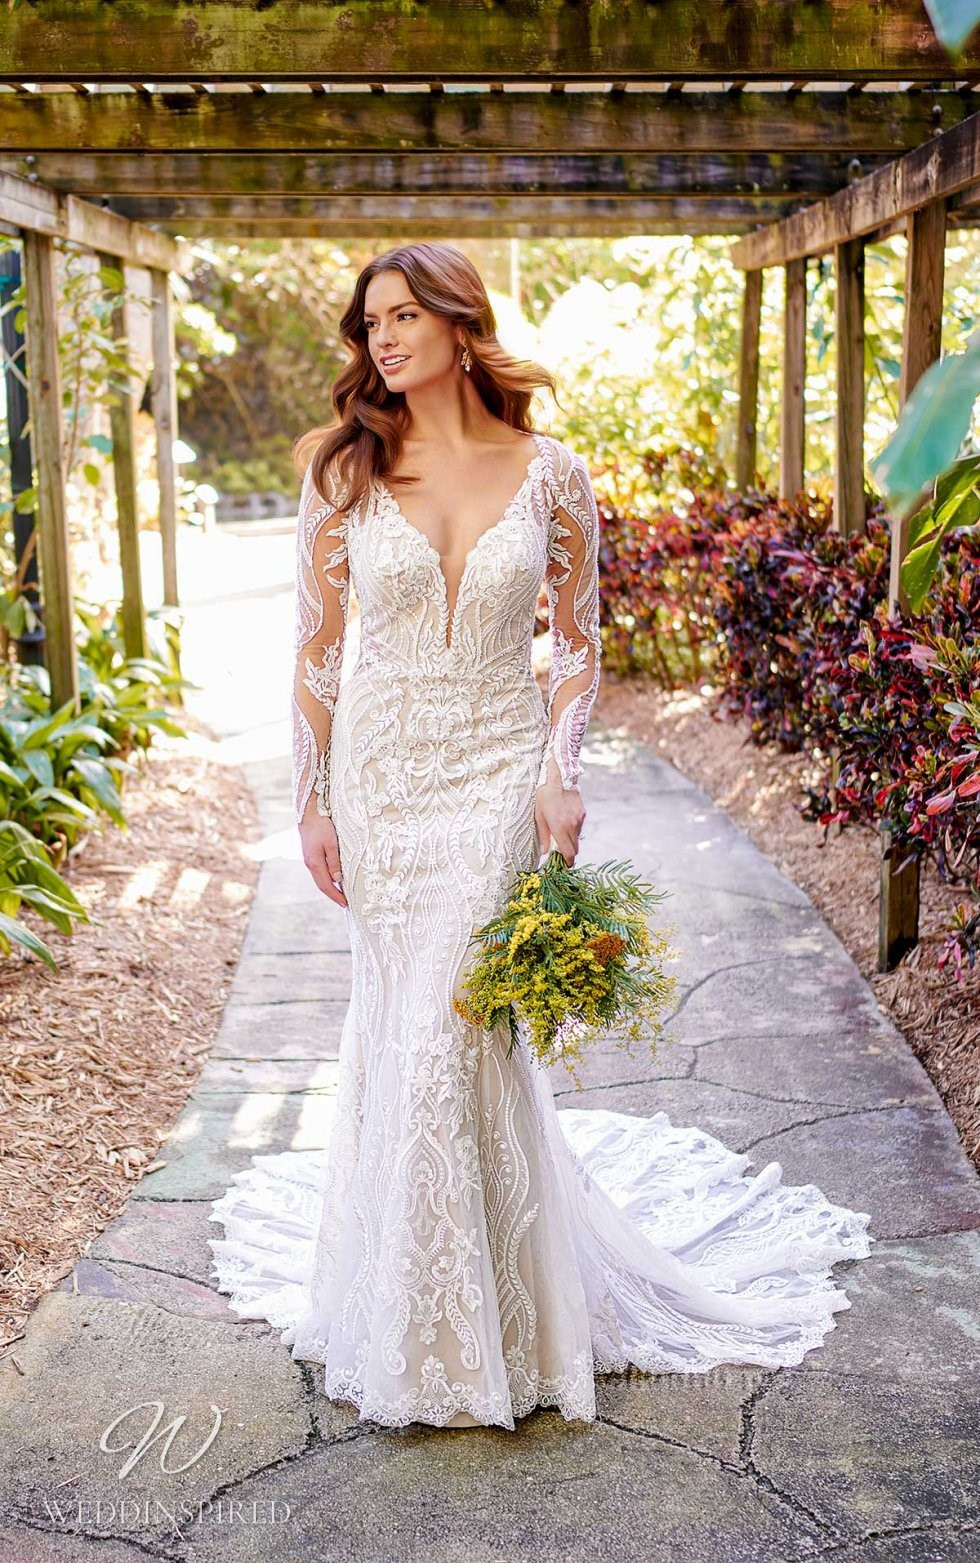 An Essense of Australia lace mermaid wedding dress with long illusion sleeves